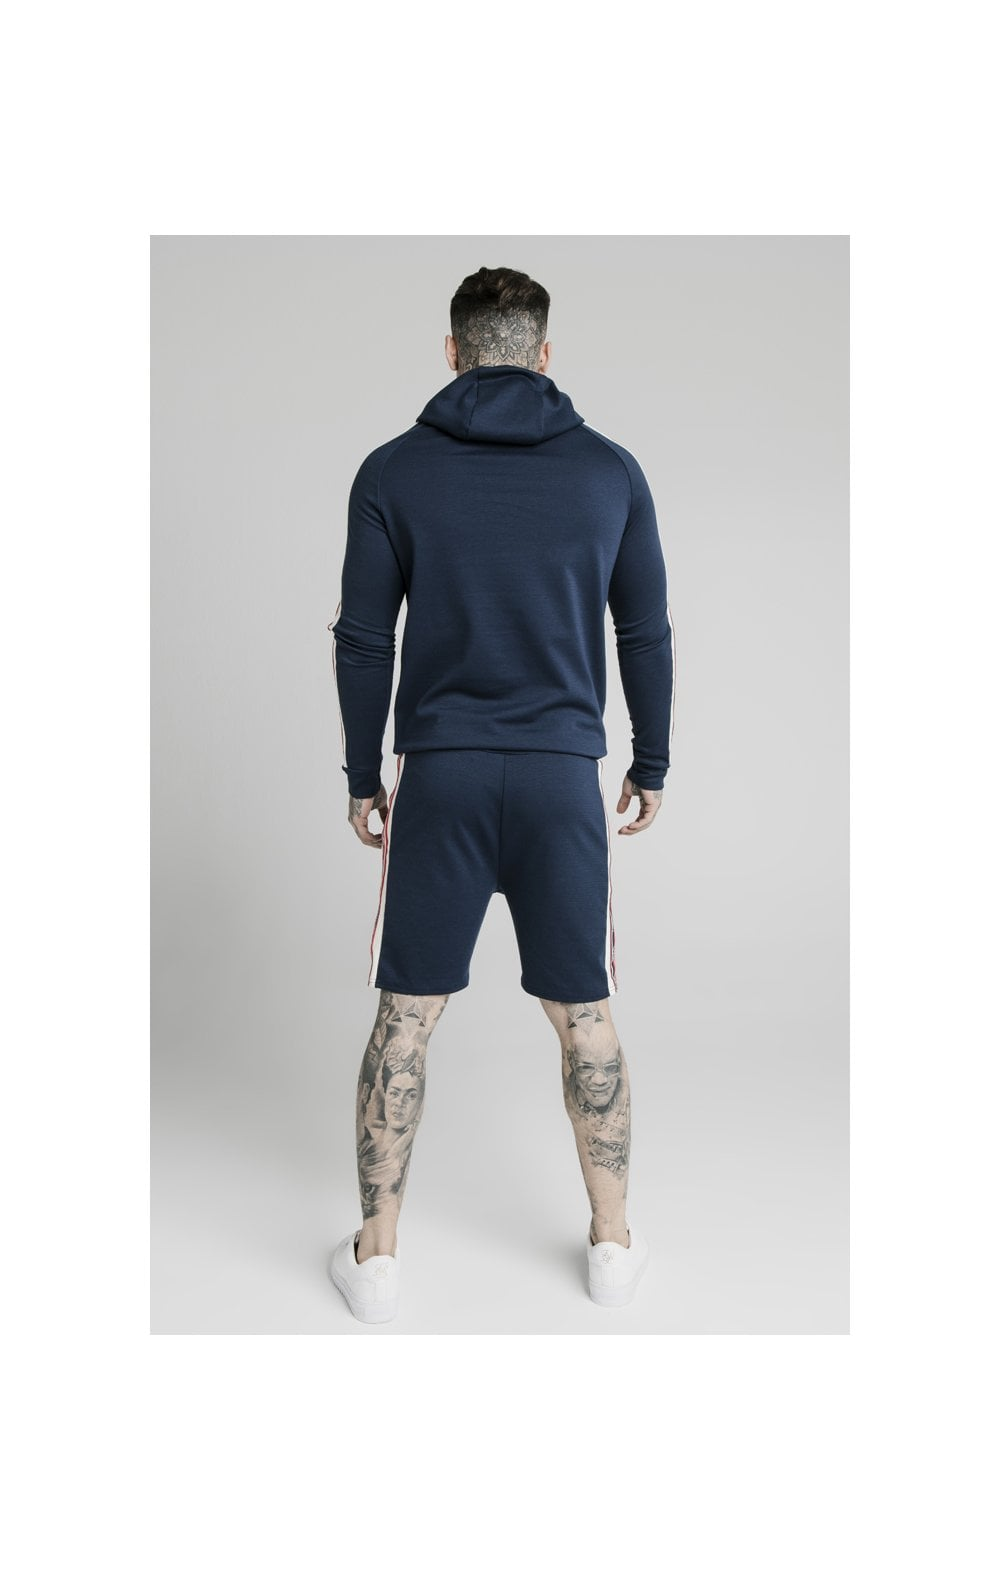 Load image into Gallery viewer, SikSilk Retro Tape Overhead Hoodie - Navy (5)